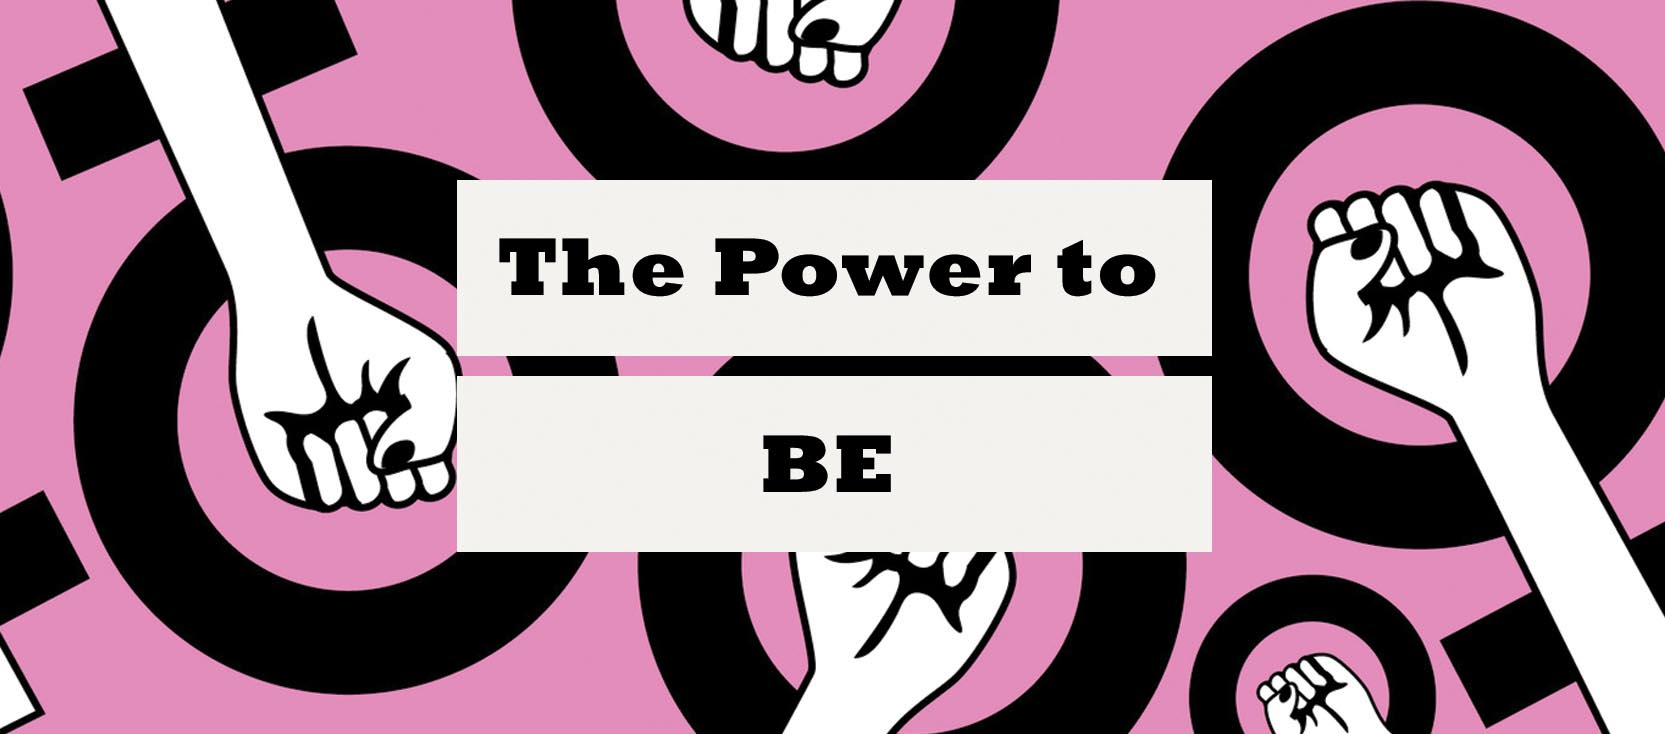 power-to-be-banner